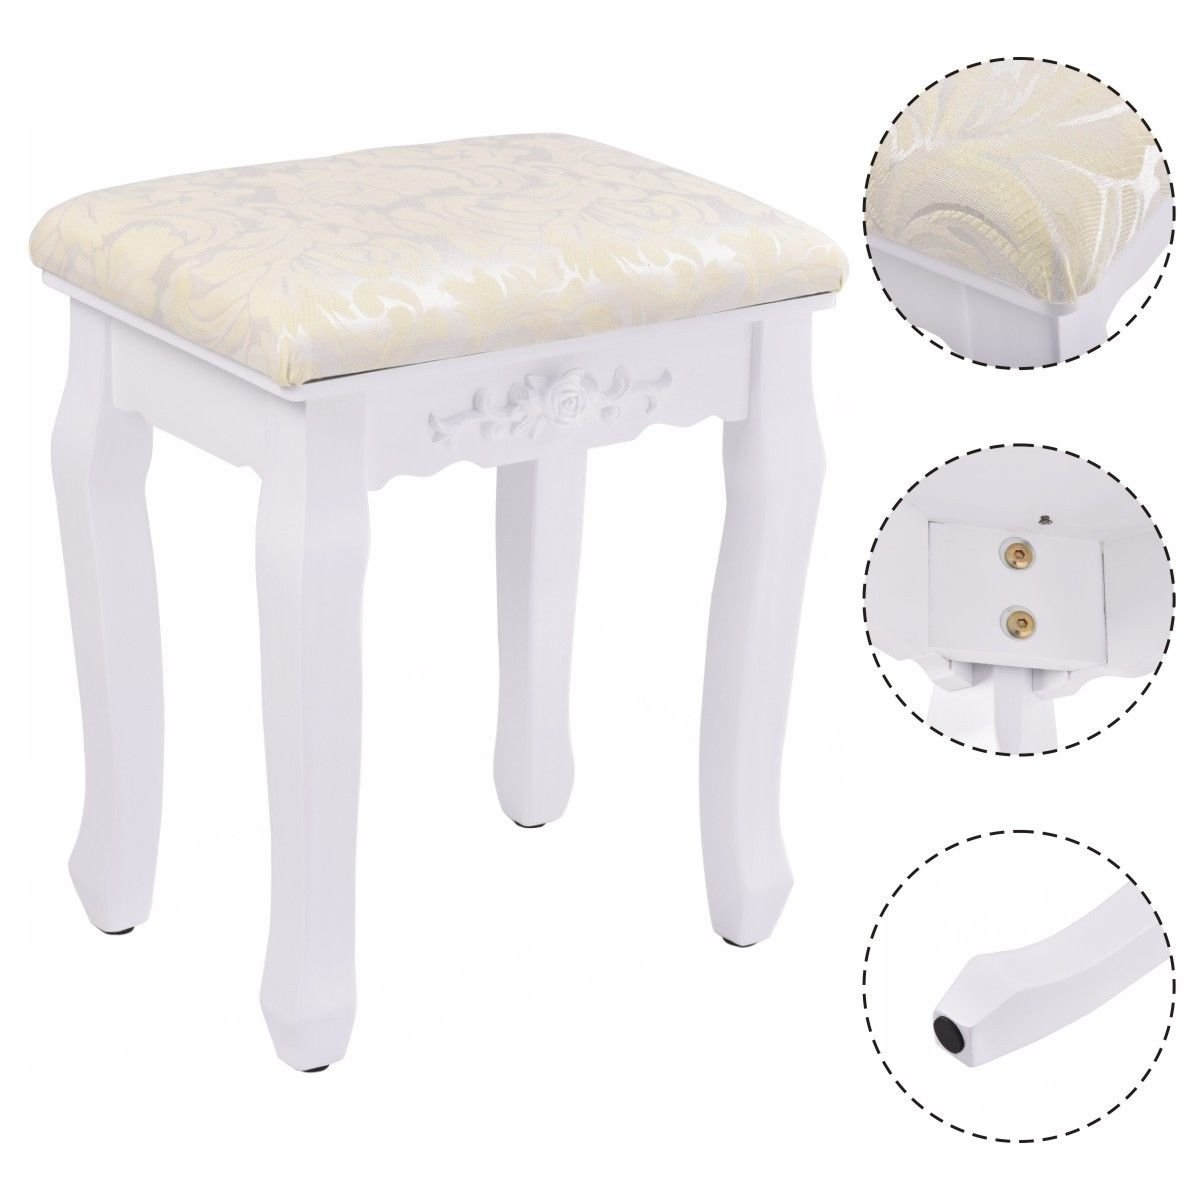 New MTN-G White Retro Wave Design Makeup Dressing Stool Pad Cushioned Chair Piano Seat